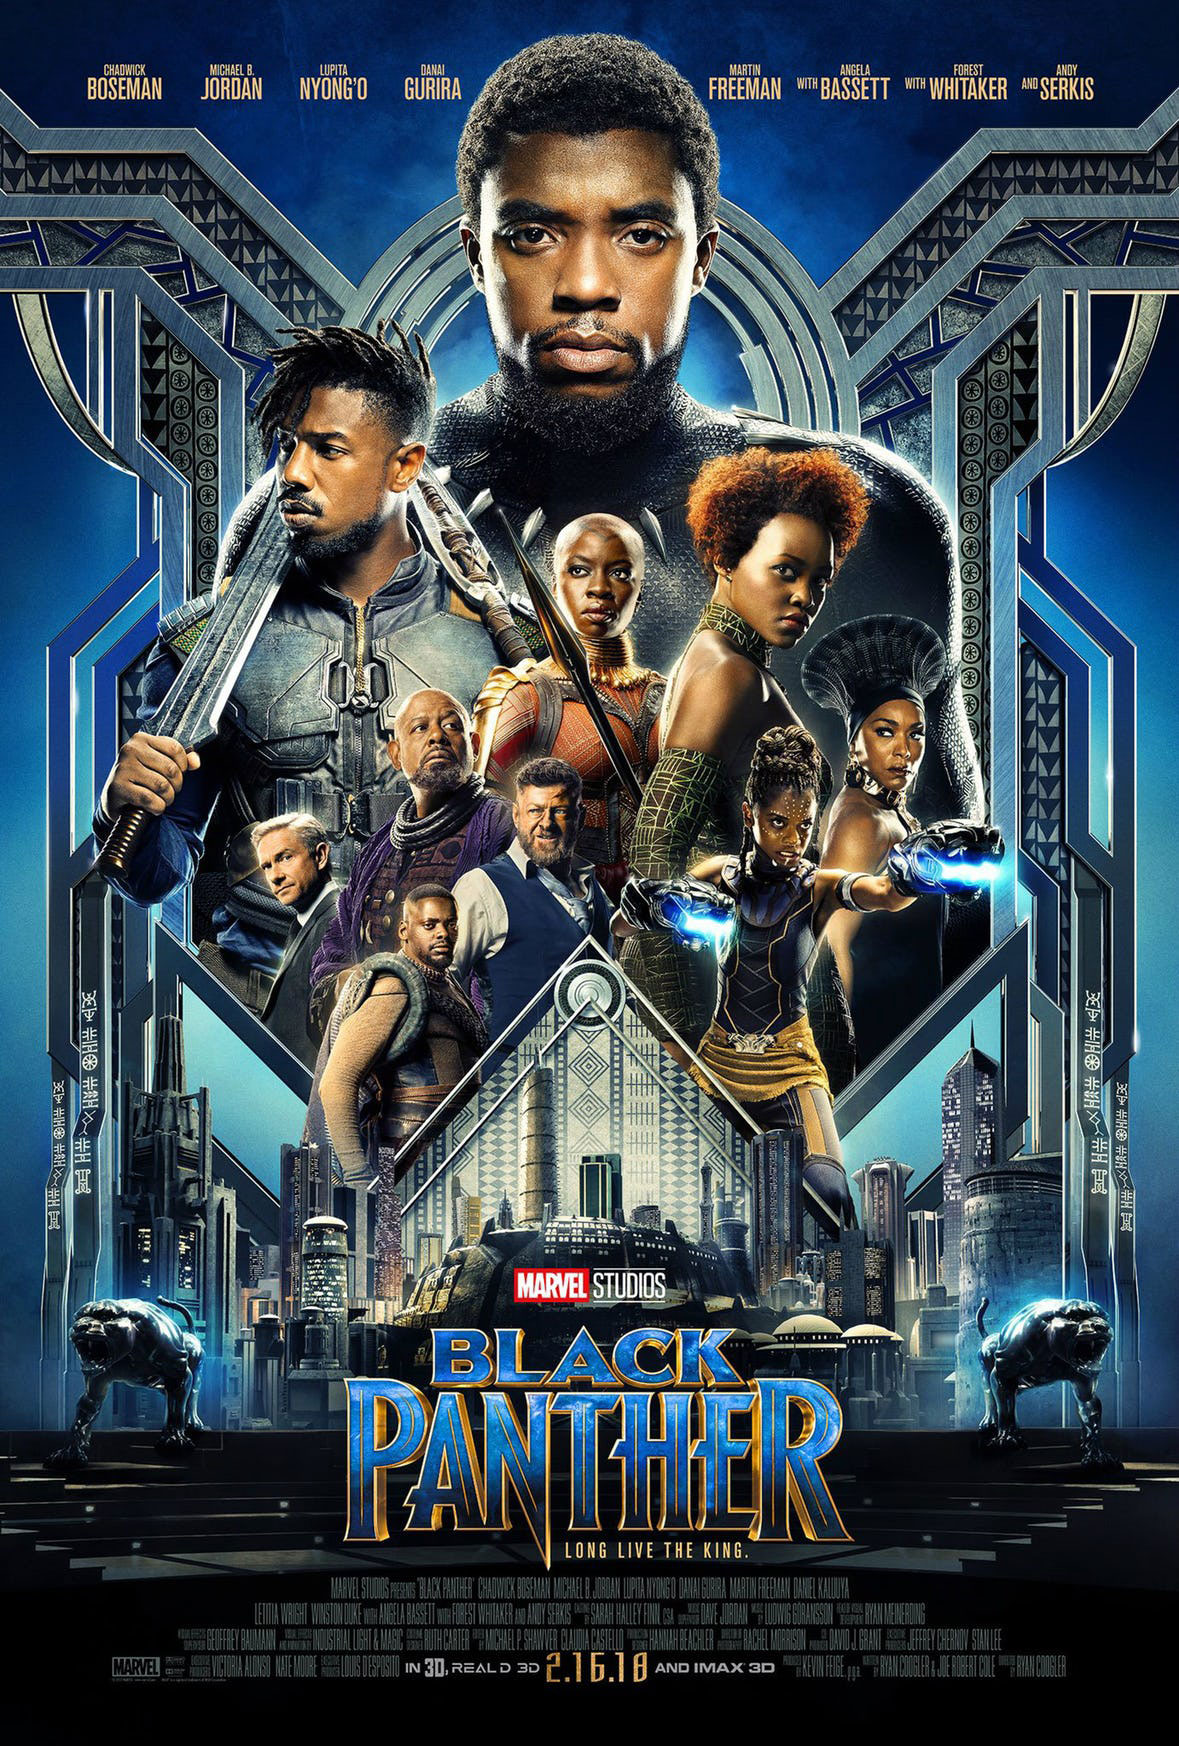 We checked out the latest Marvel movie in RealD 3D, check out our review of the movie starring Chadwick Boseman as Black Panther